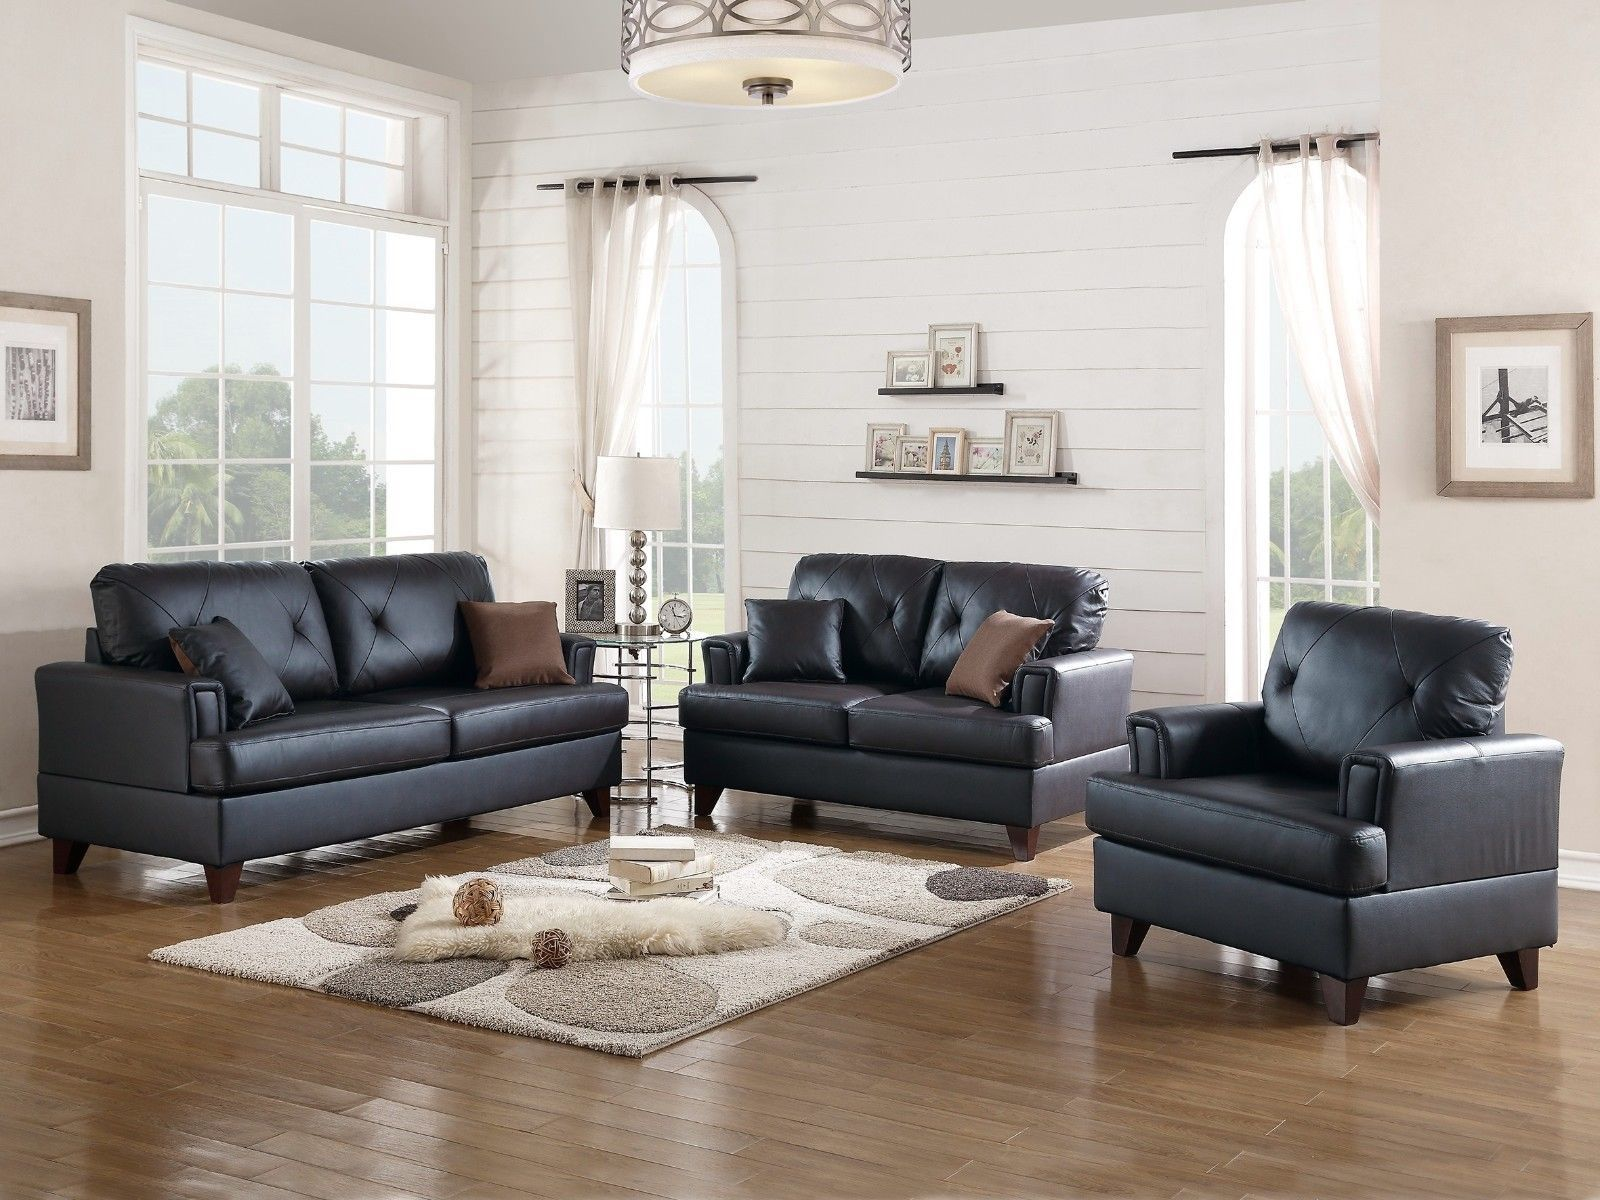 Beautiful Black Leather 3p Sofa Set Sofa Couch Loveseat Chair